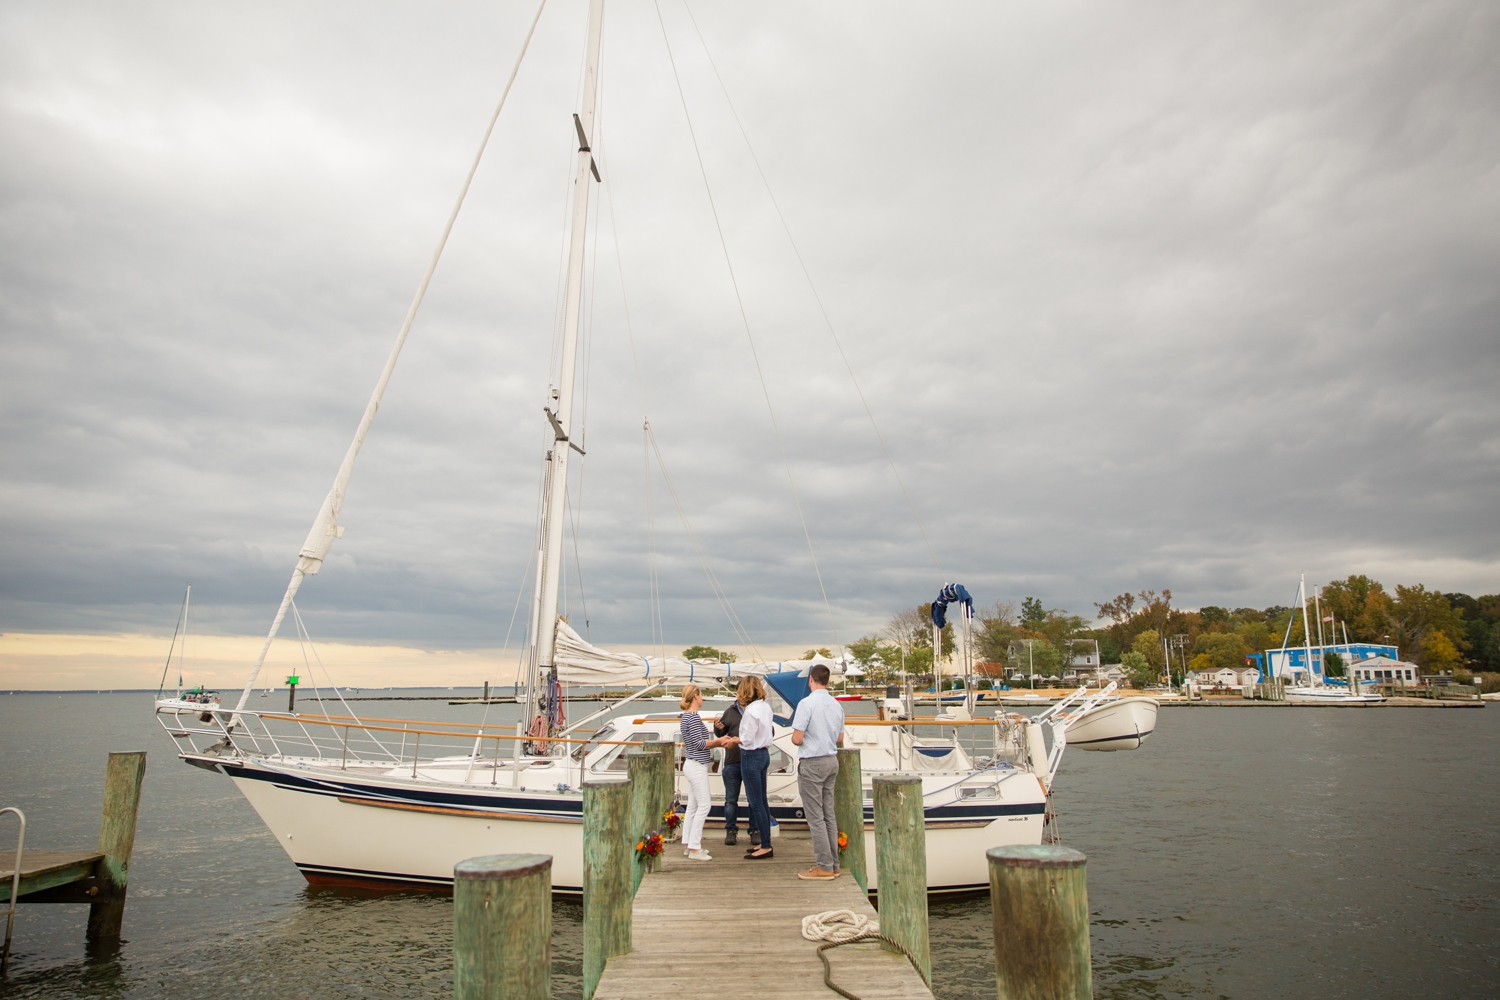 Eloping on your sailboat in Annapolis